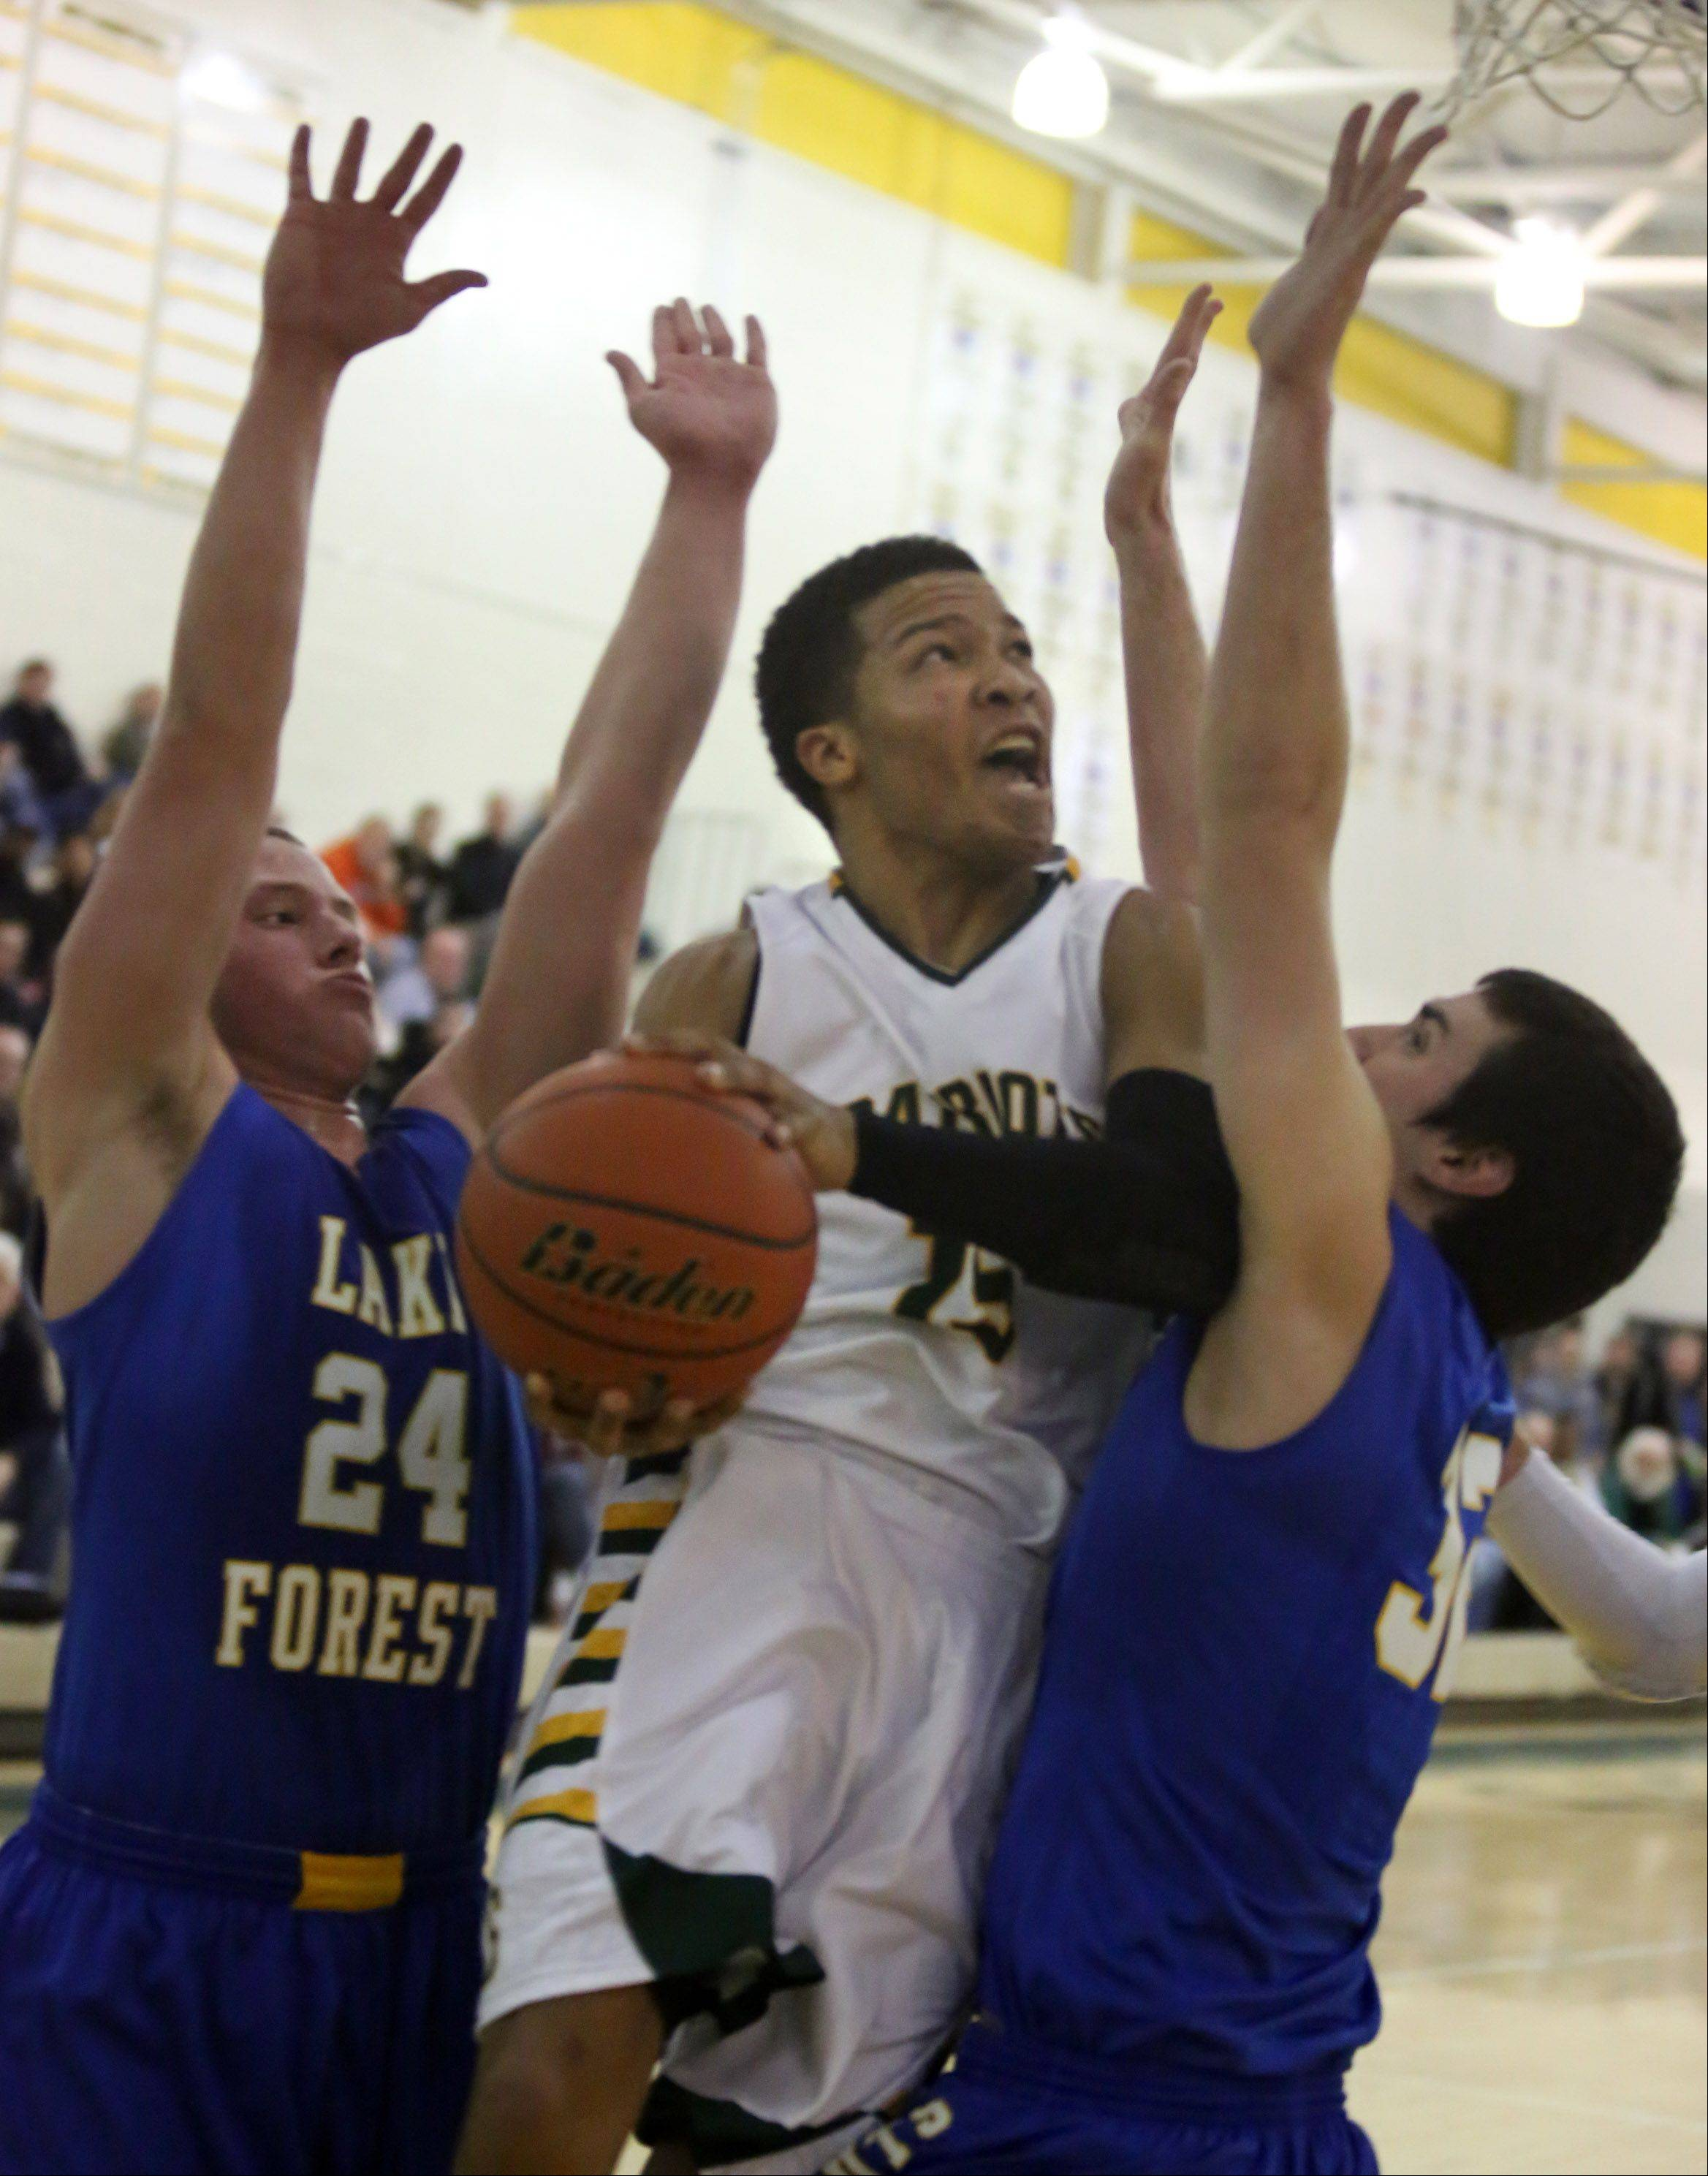 Stevenson forward Justin Smith puts the ball while sandwiched between two Lake Forest defenders including Cal Miller, left, at Stevenson on Friday in Lincolnshire.